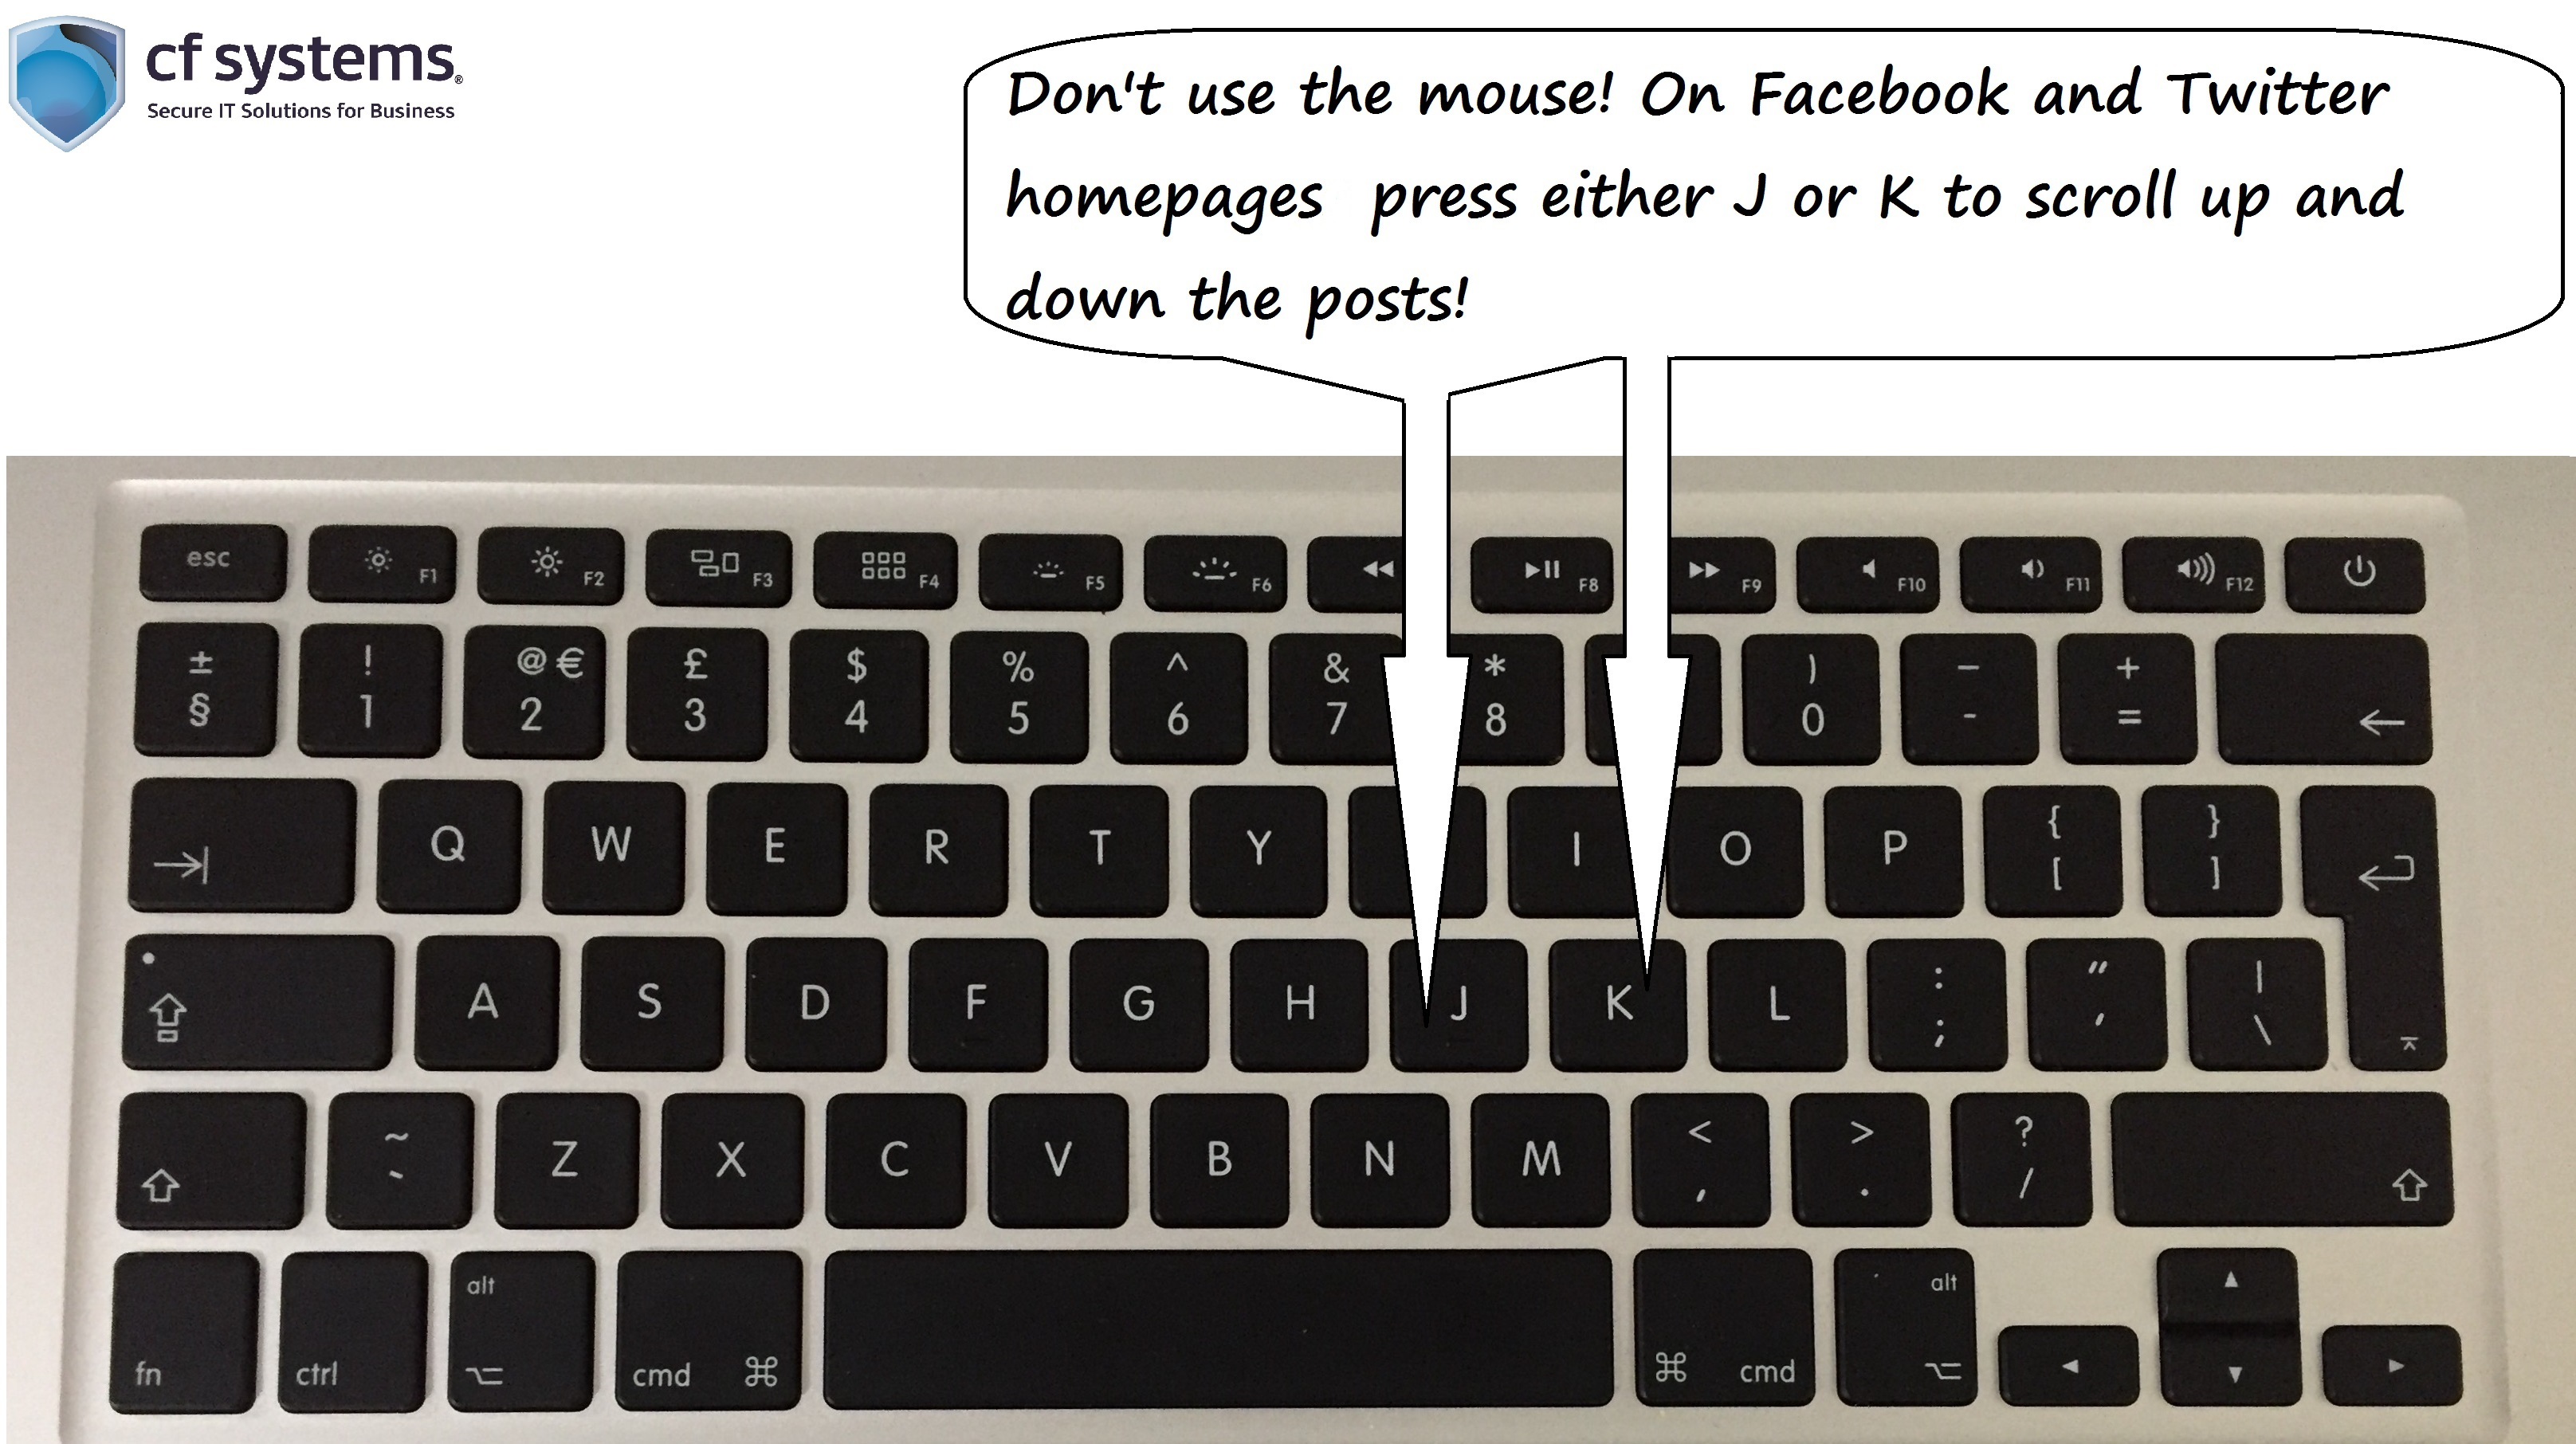 Social Media shortcuts! Scroll up and down your Facebook and Twitter posts by only using your keyboard.